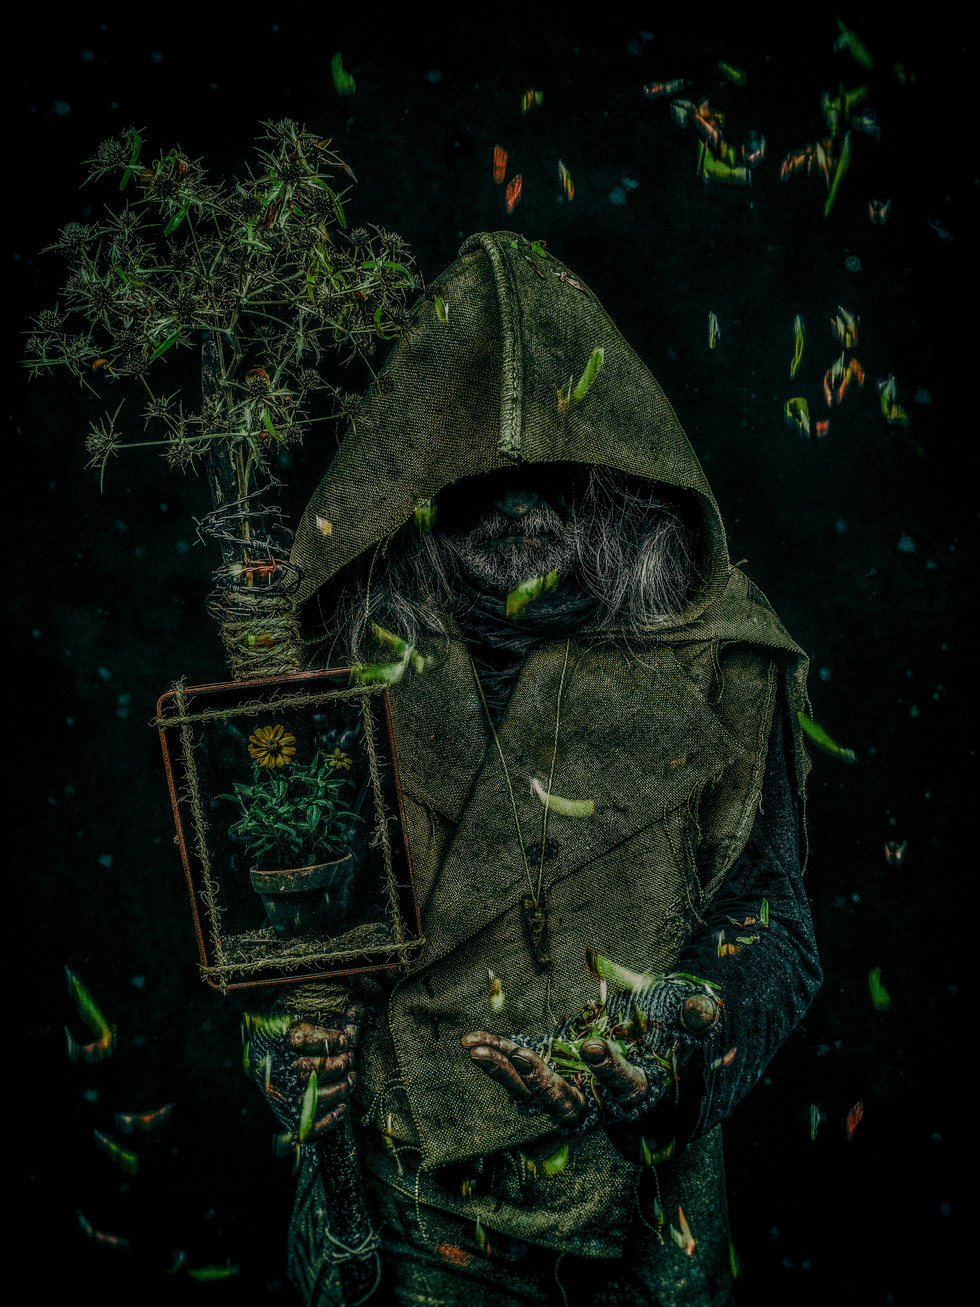 The keeper of the last flower